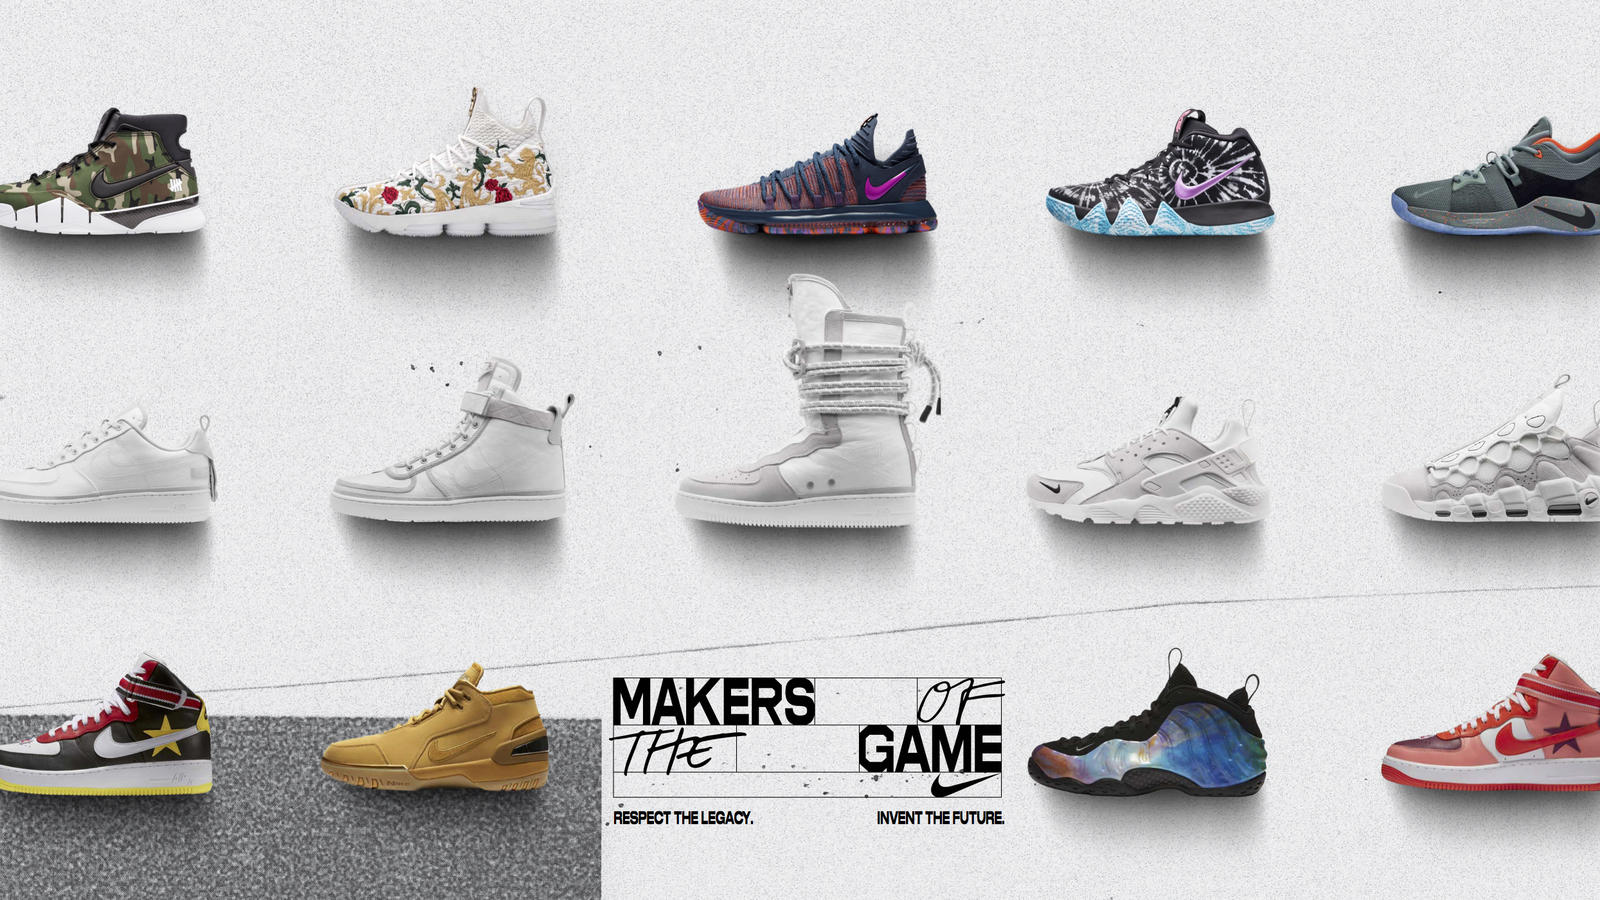 Nike_Makers_of_the_Game_hd_1600.jpg